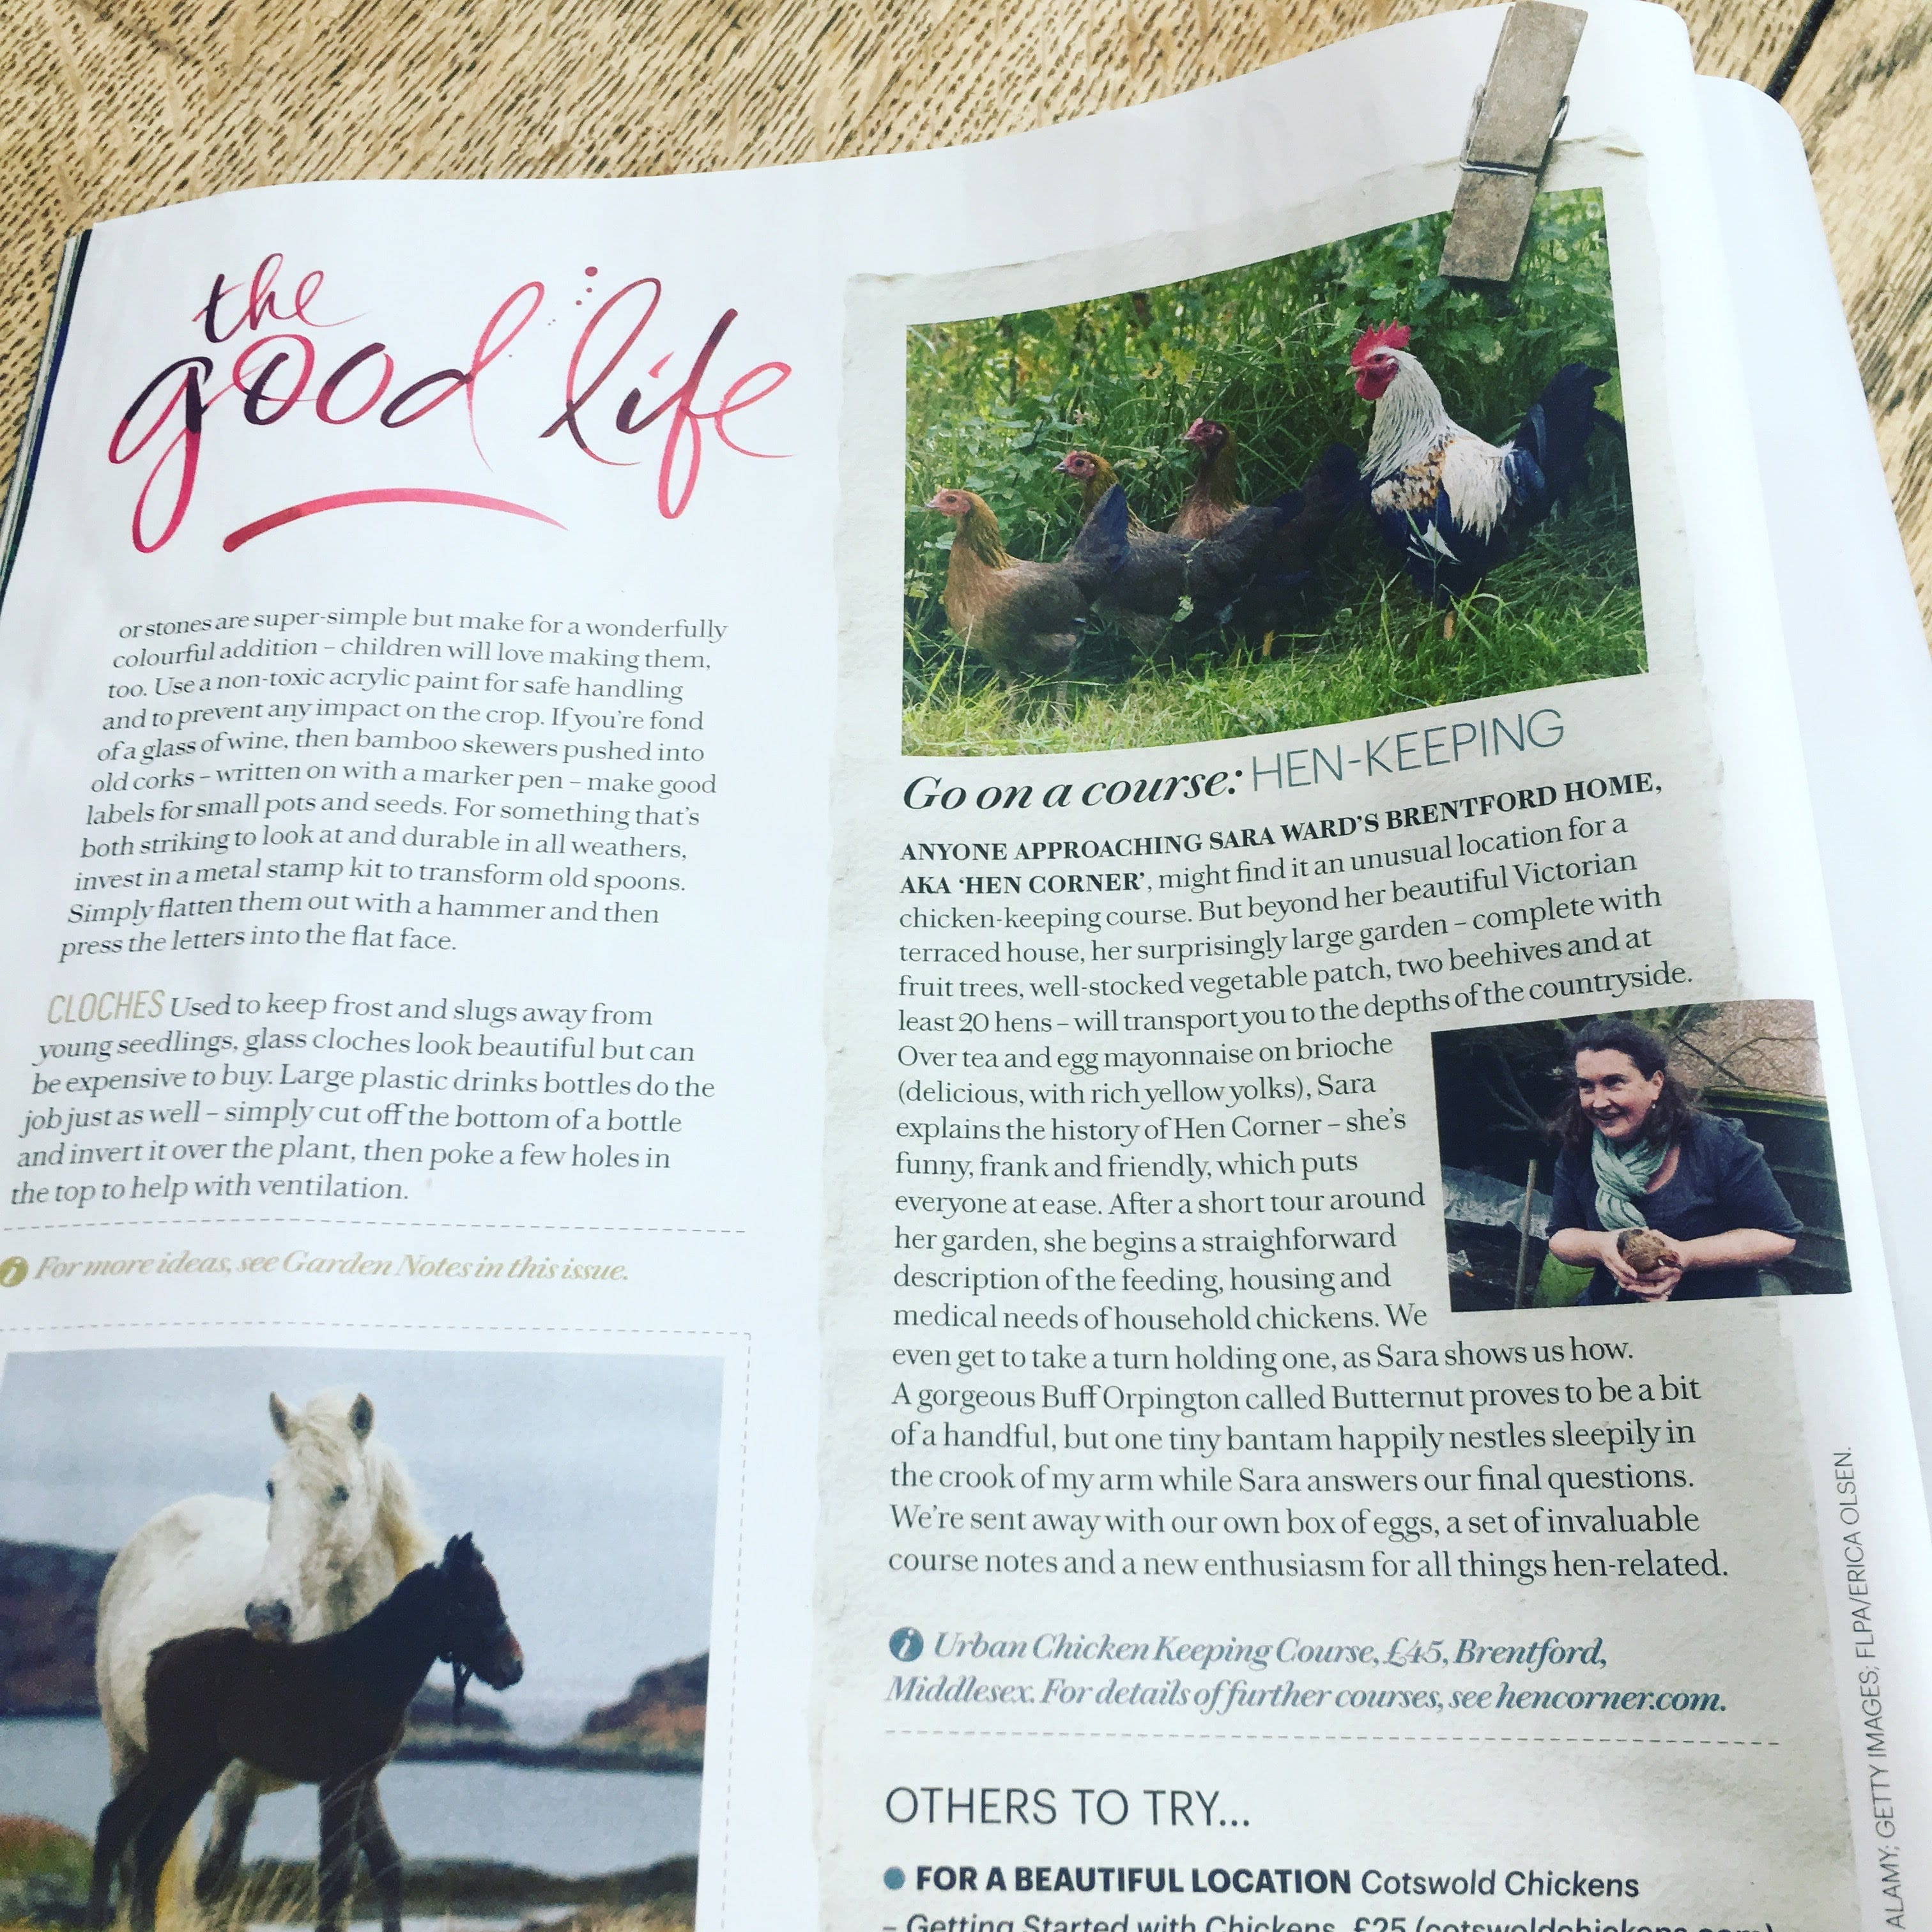 It Was Wonderful To Welcome Country Living Magazine S Features Editor Anna Jury Hen Corner For Urban Hens Keeping Ens In London Last Summer